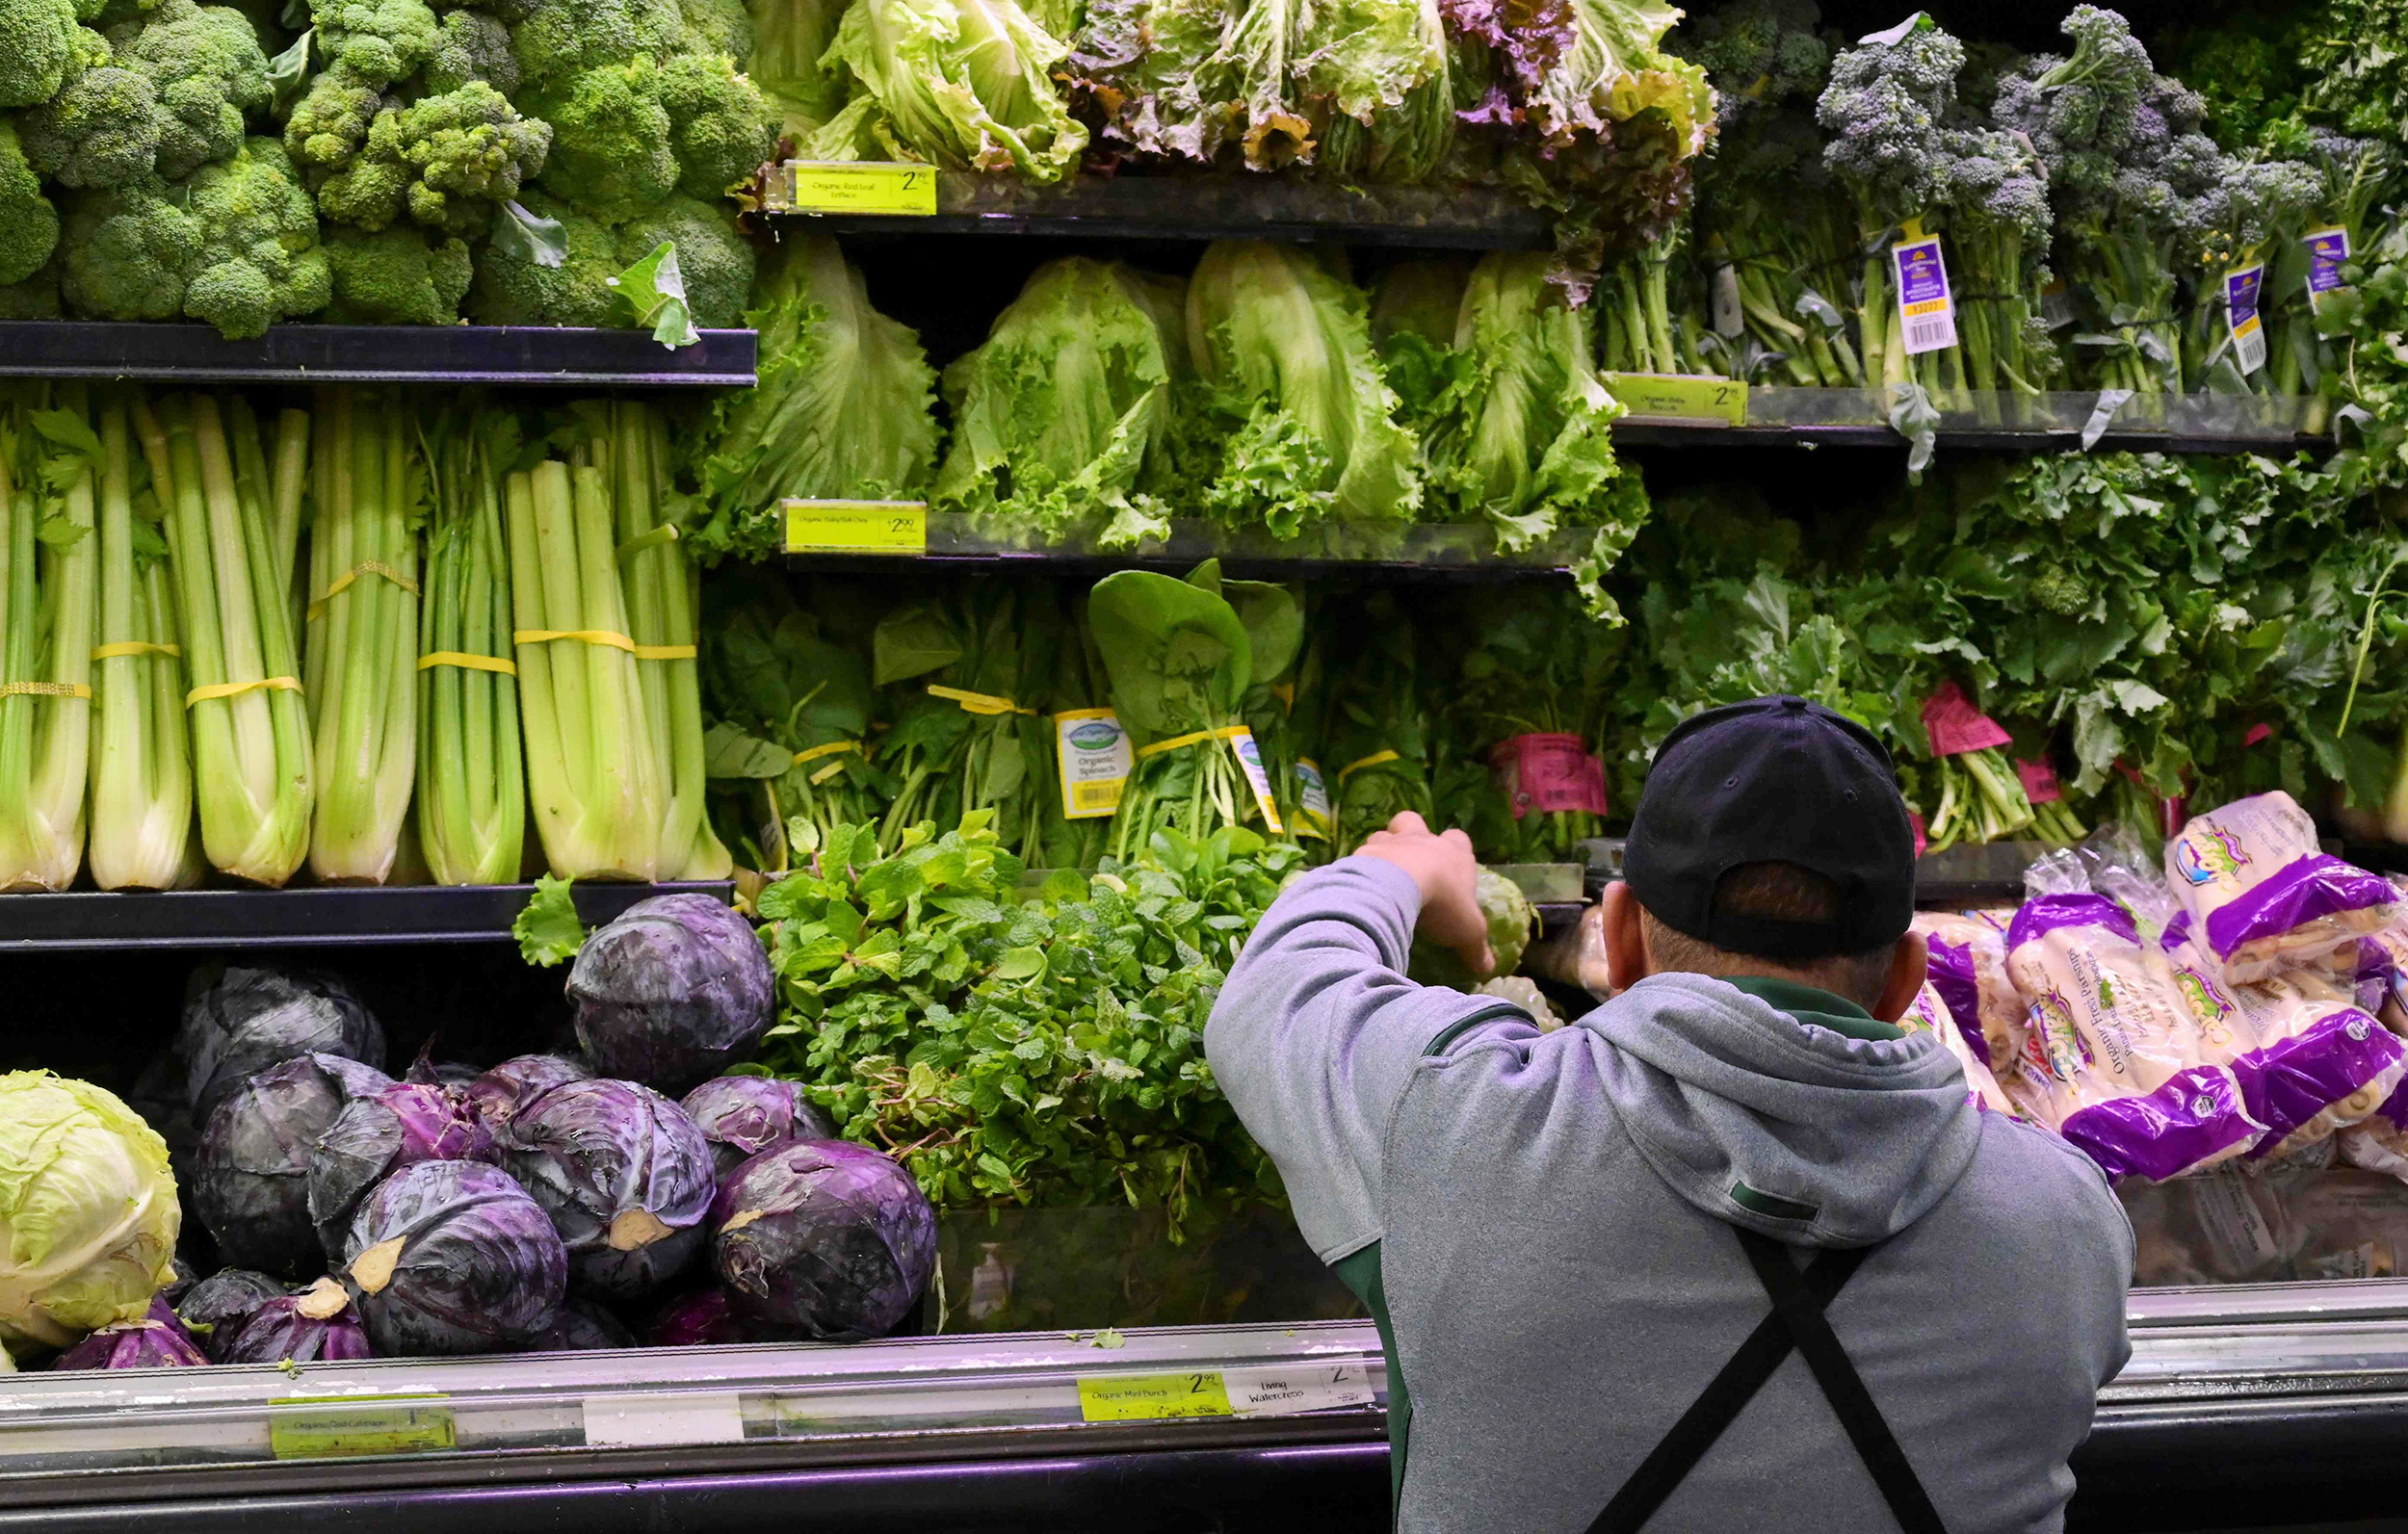 Nine more sickened in E. coli outbreak affecting romaine lettuce, CDC says